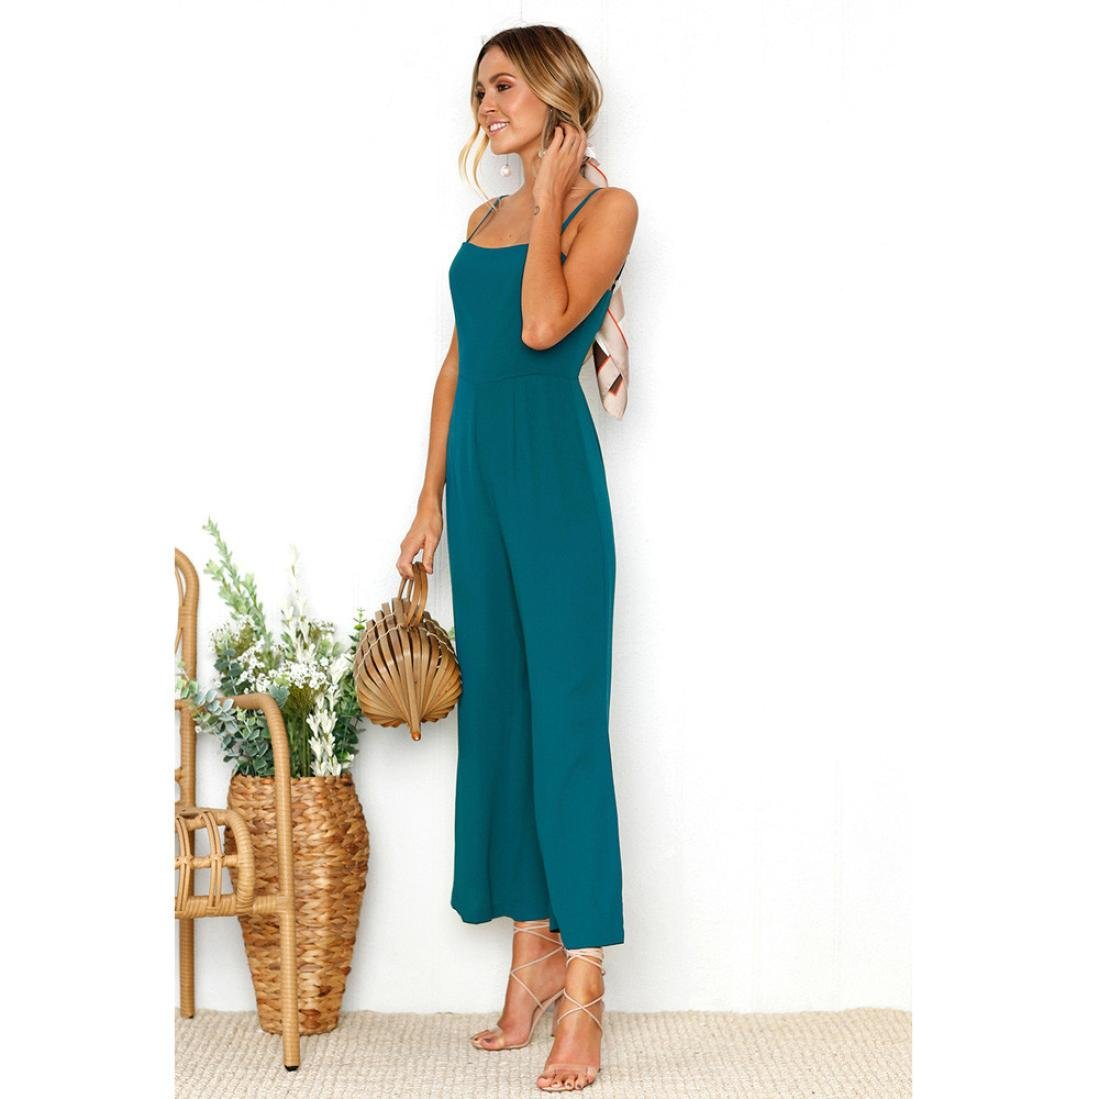 Xjp Womens Casual Solid Spaghetti Strap Jumpsuits Loose Trousers Playsuit: Amazon.co.uk: Clothing